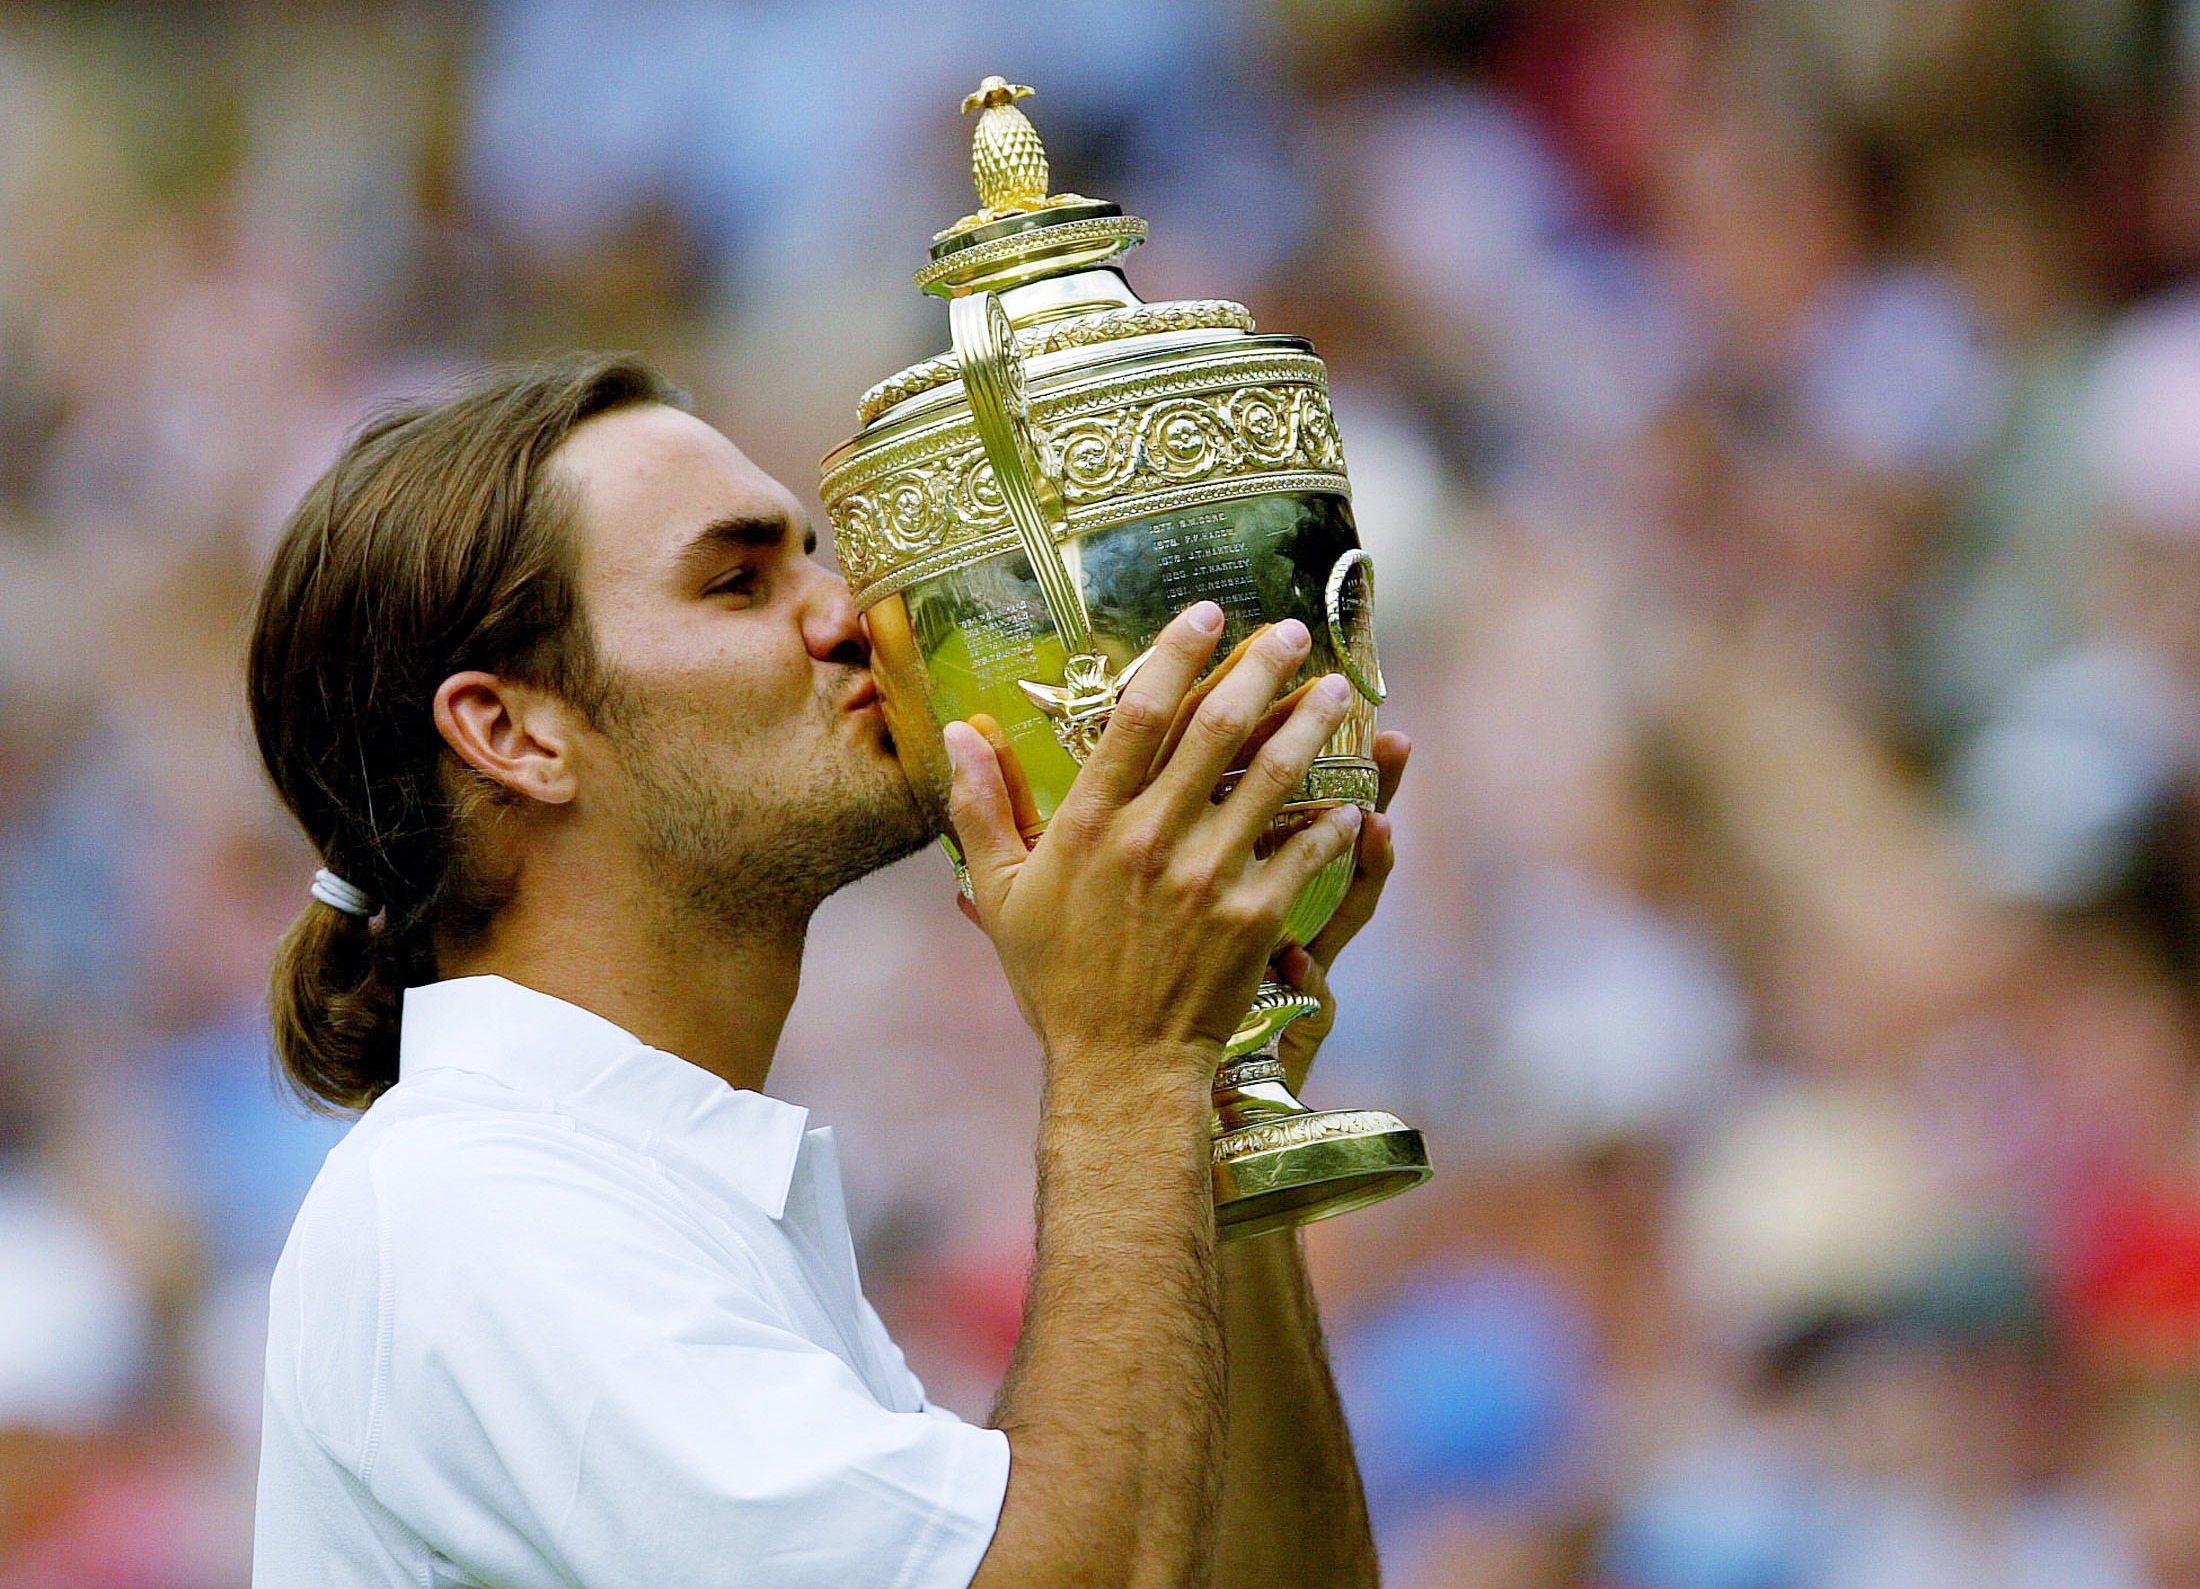 Federer after his first Wimbledon title/Courtesy: Reuters